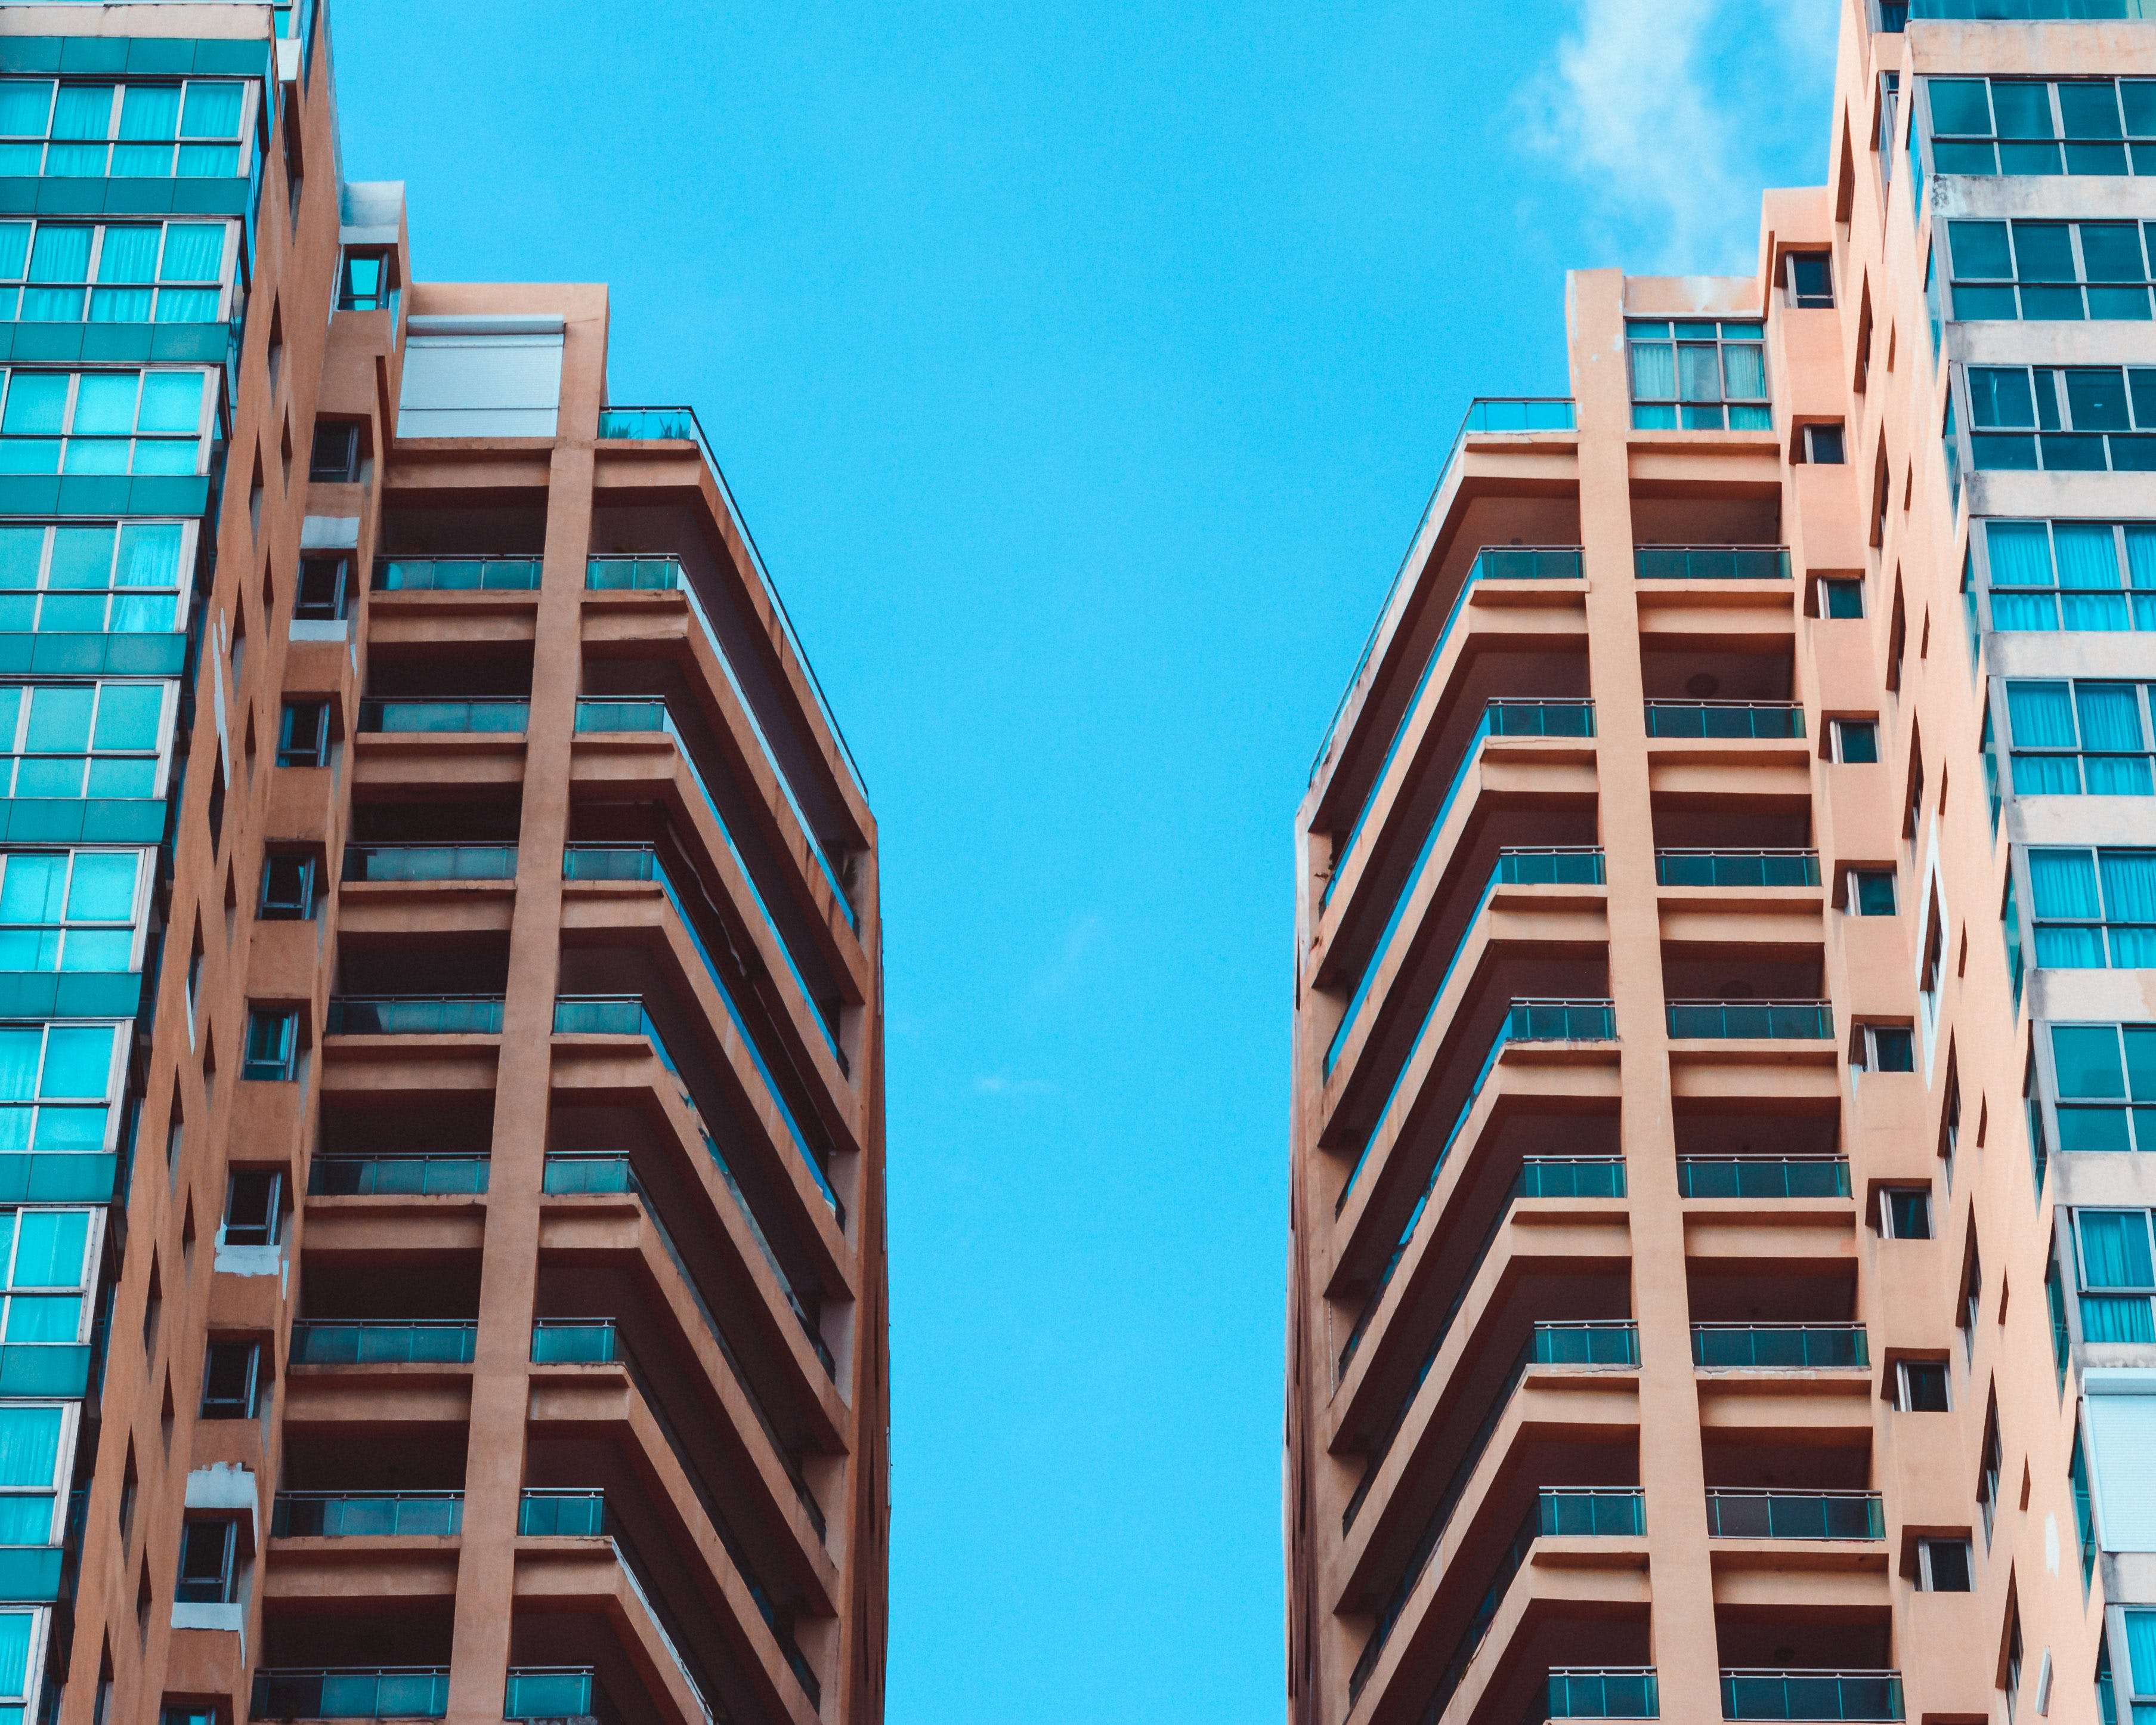 Low Angle View of Two High Rise Buildings Under Blue Sky